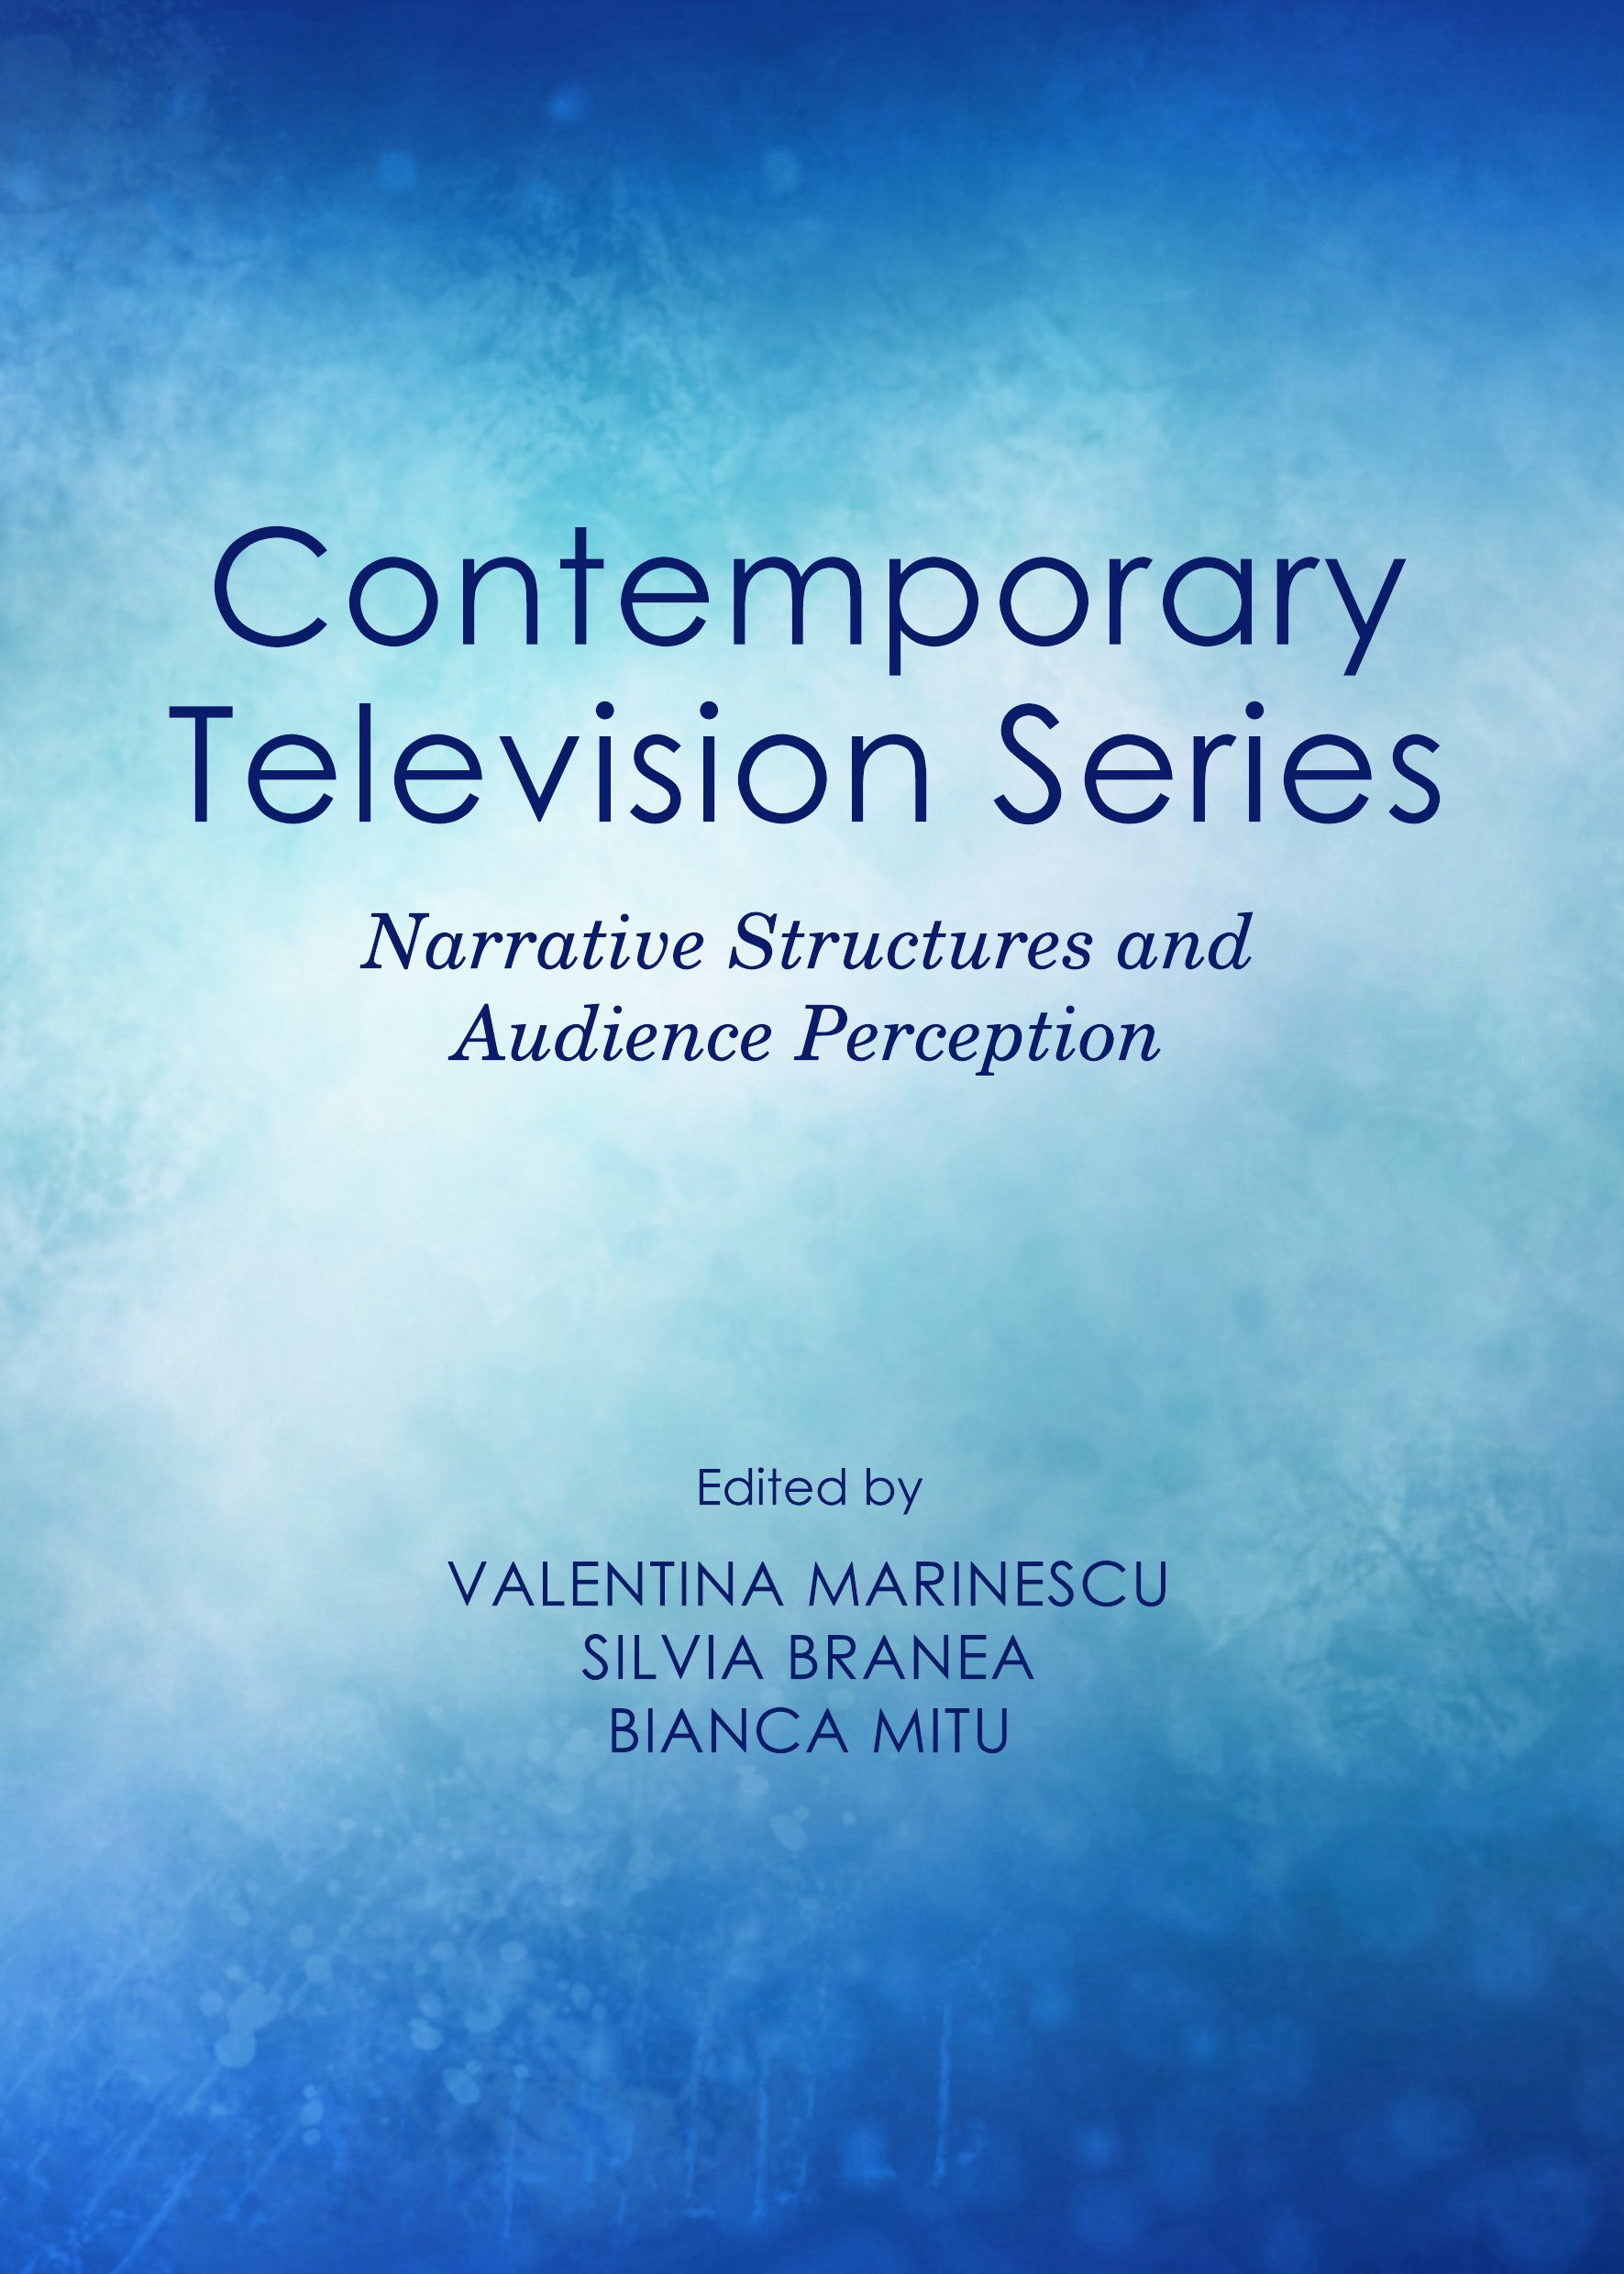 Contemporary Television Series: Narrative Structures and Audience Perception